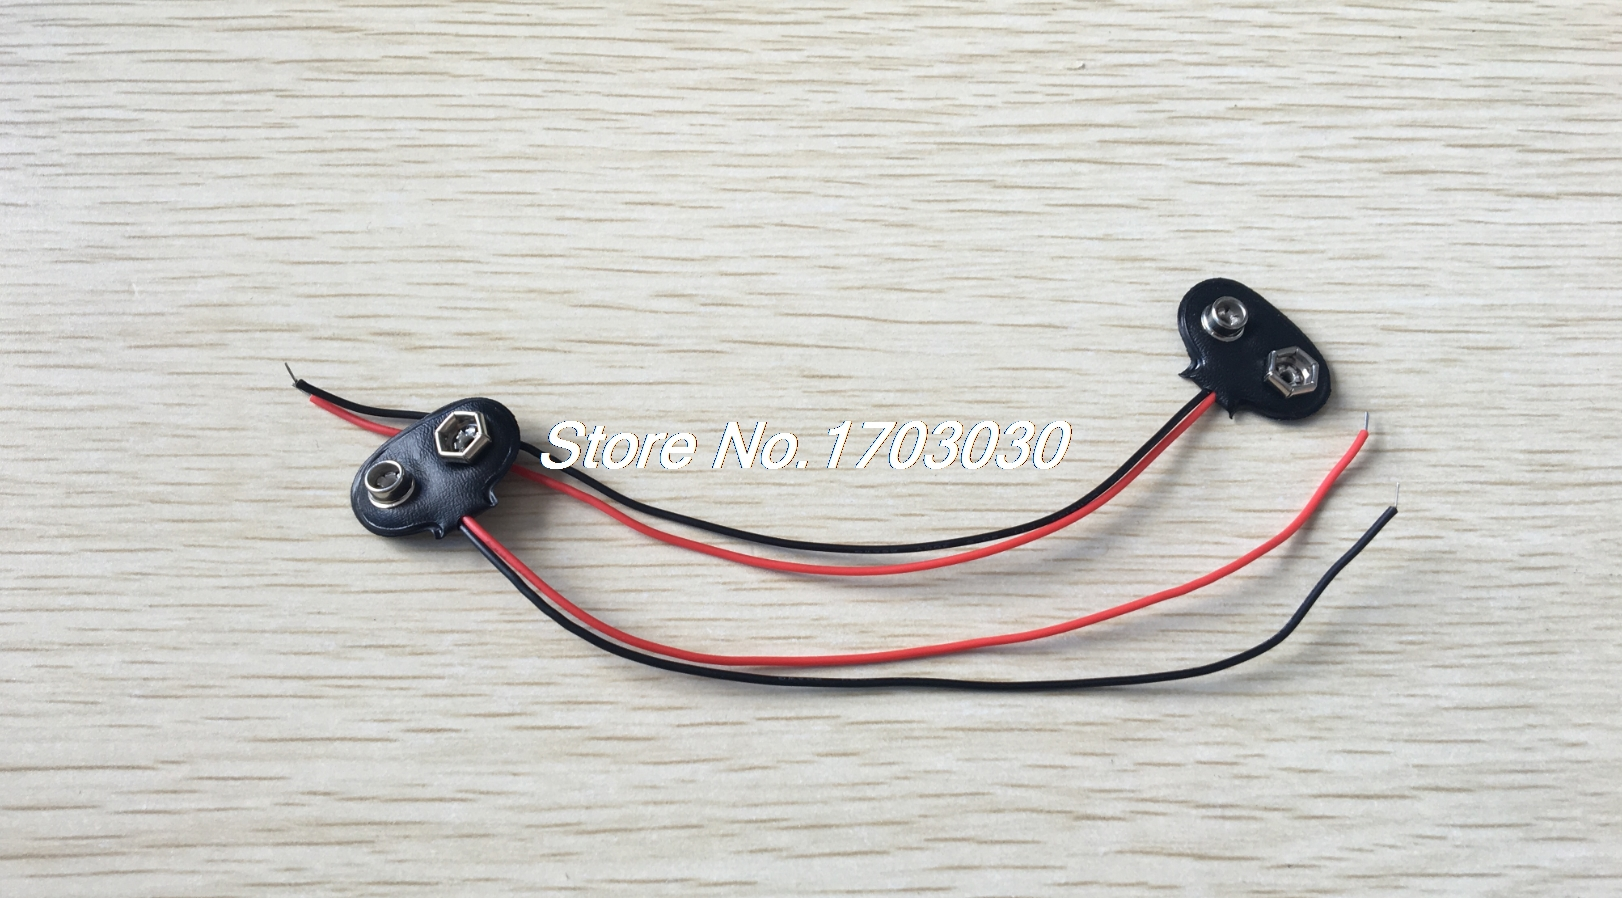 1000 pcs 9V 9 VOLT SNAP ON BATTERY CLIP CONNECTOR 10cm 1000 pcs 9v 9 volt snap on battery clip connector 10cm